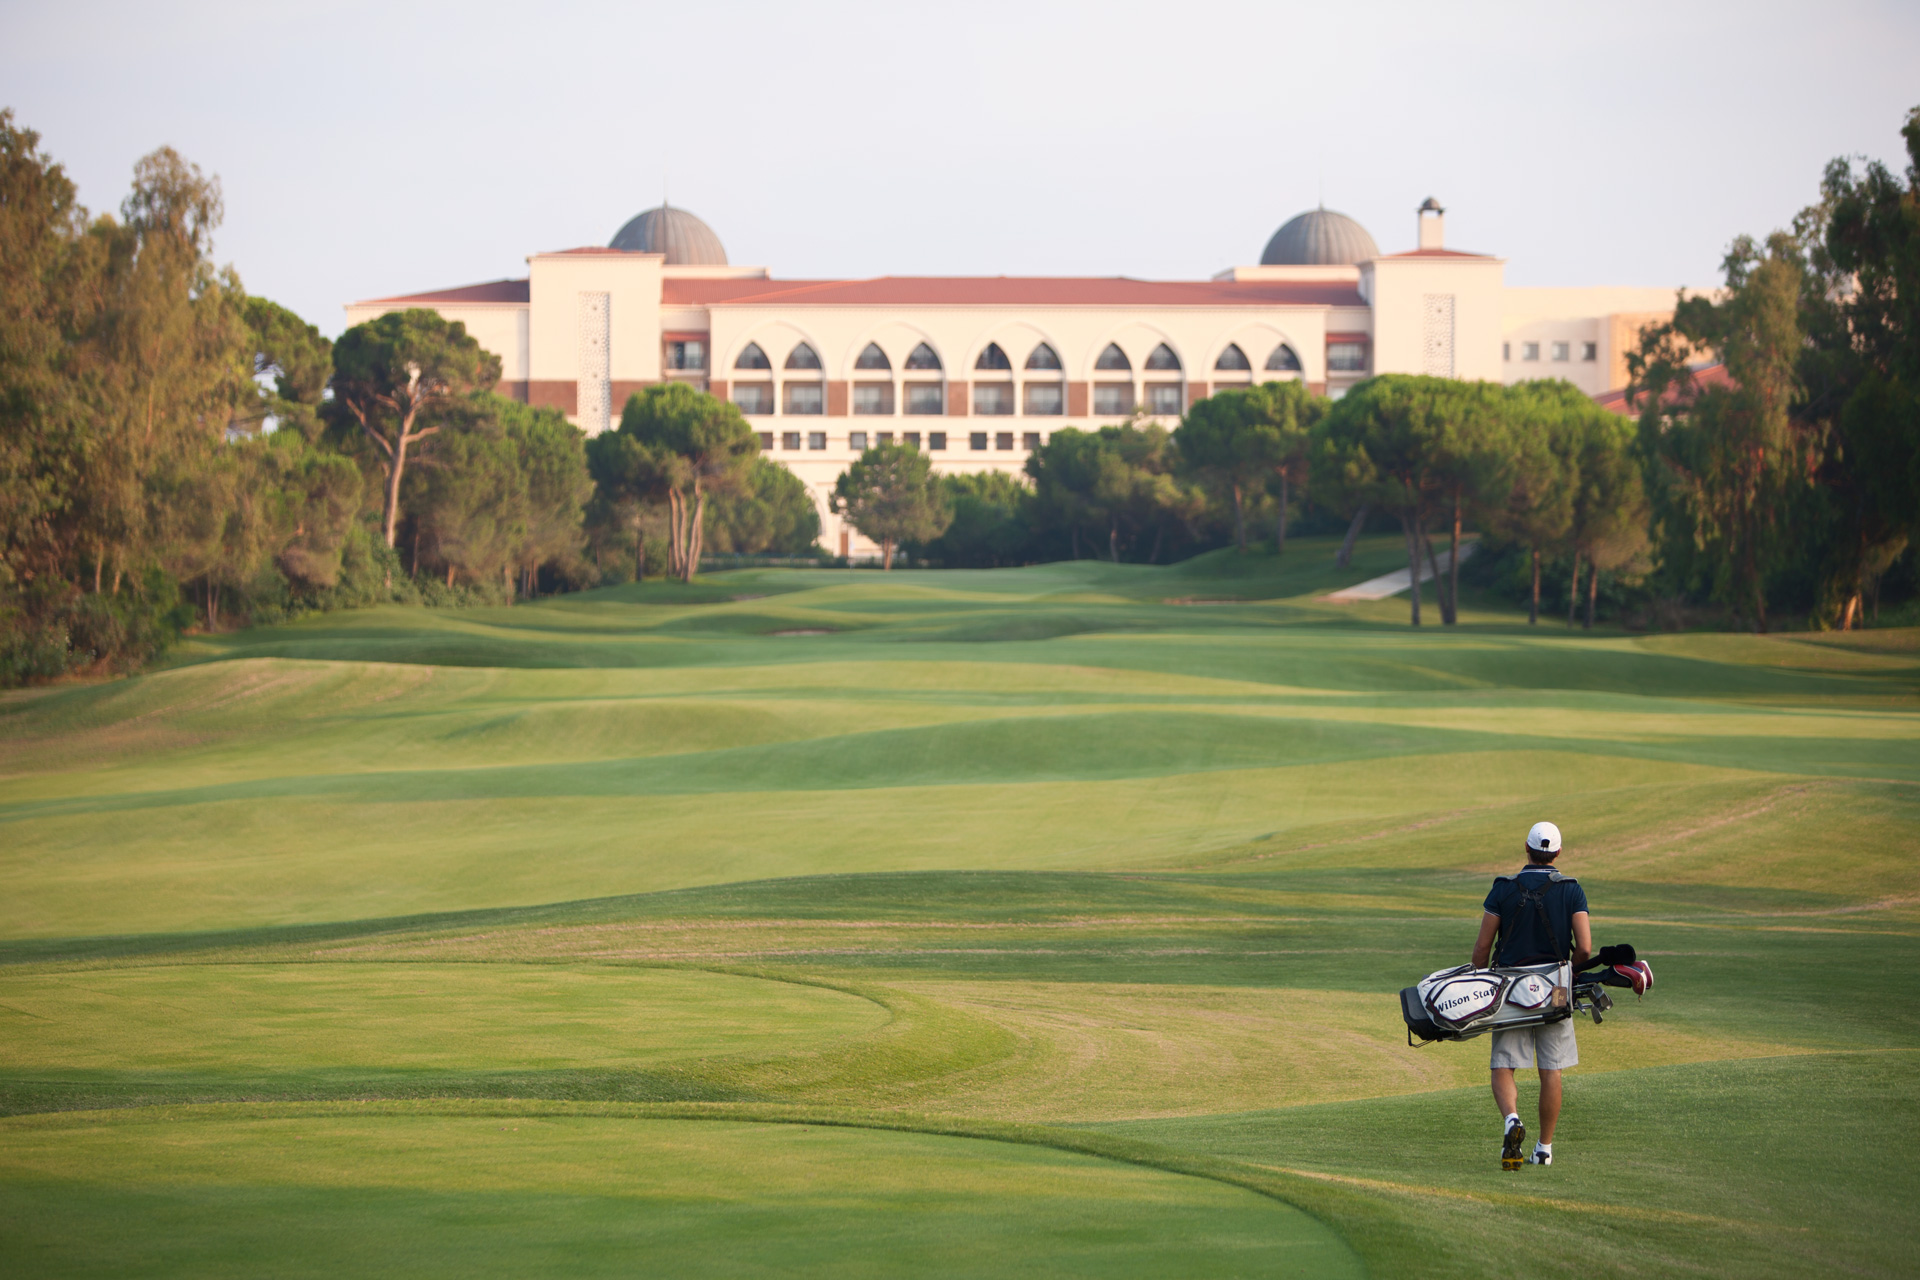 Kempinski Hotel The Dome | Golf